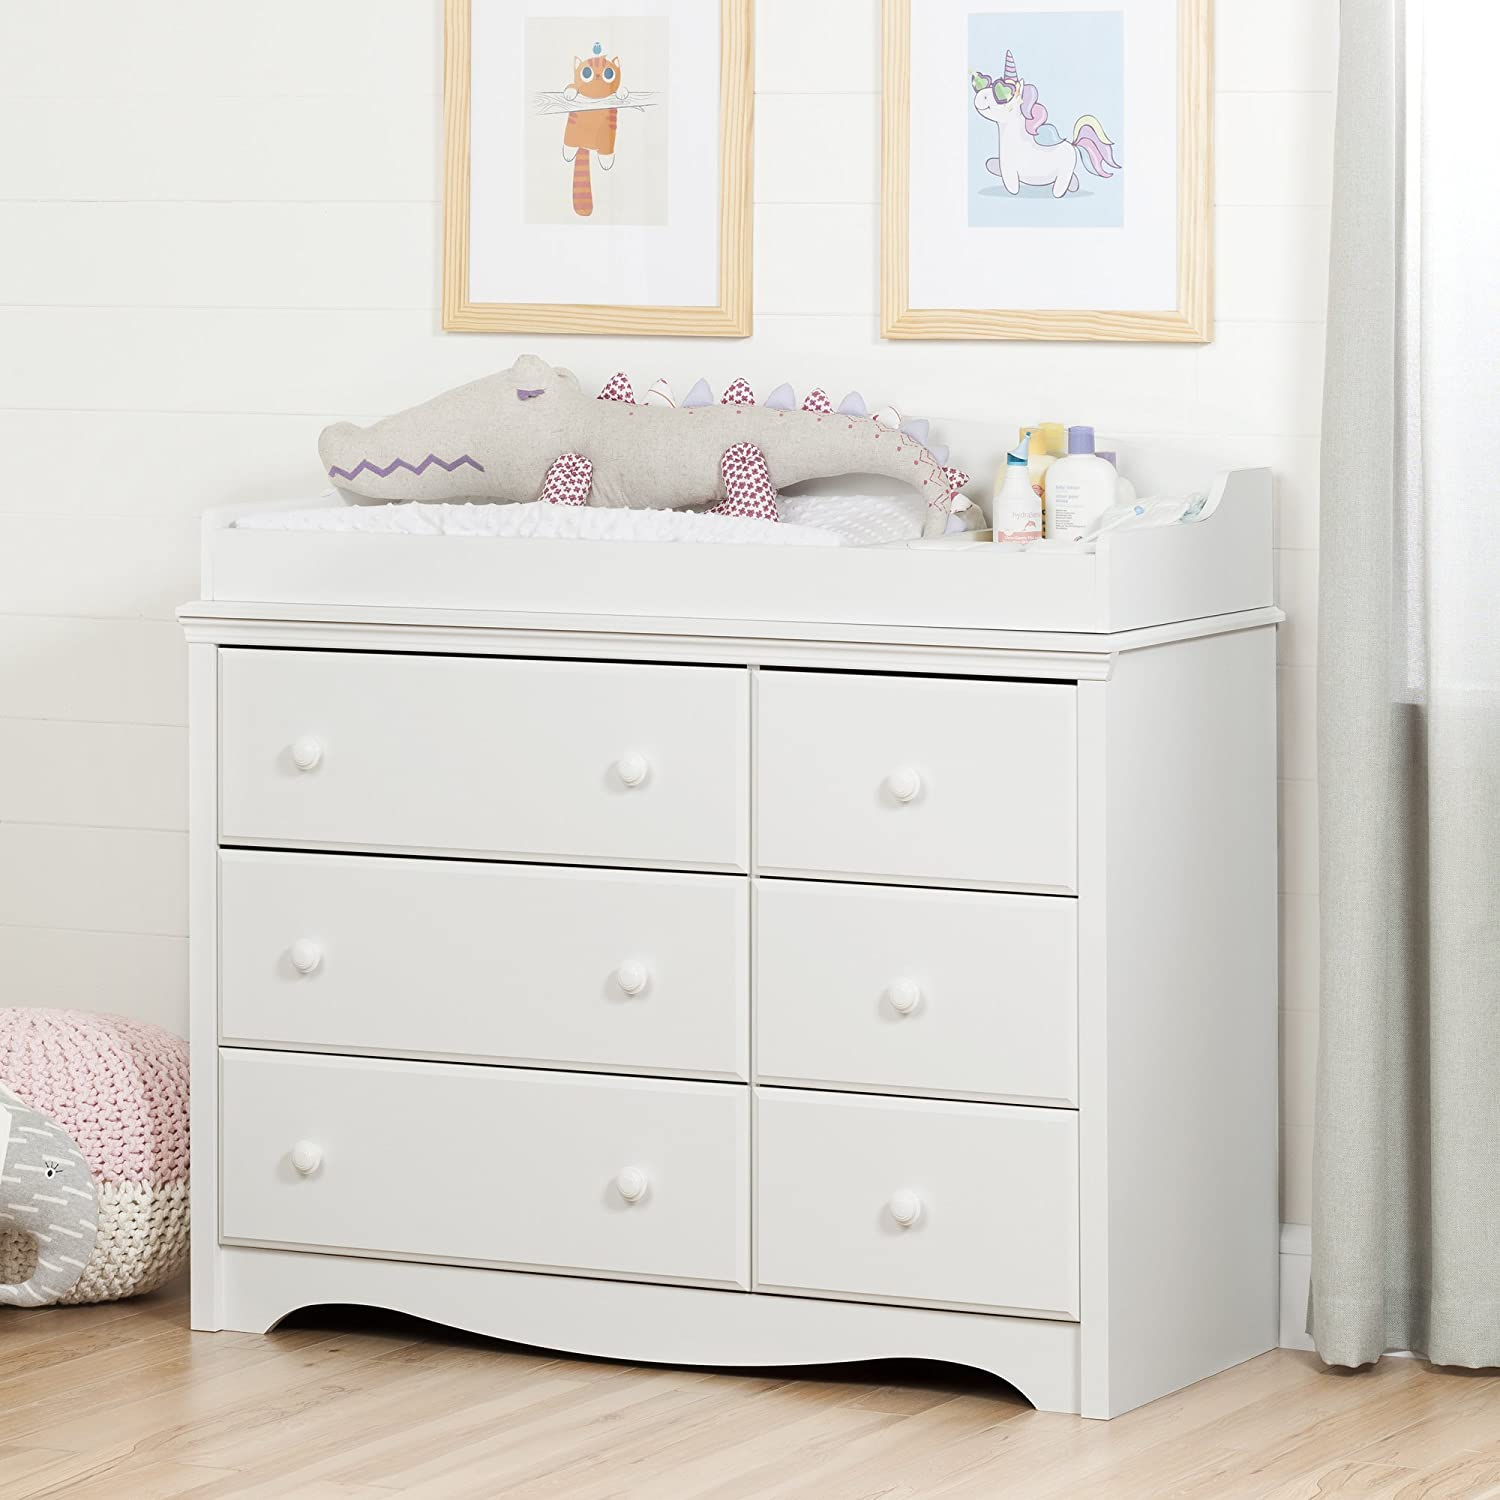 Amazon.com : South Shore Furniture Angel Changing Table With 6 Drawers,  Pure White : Baby